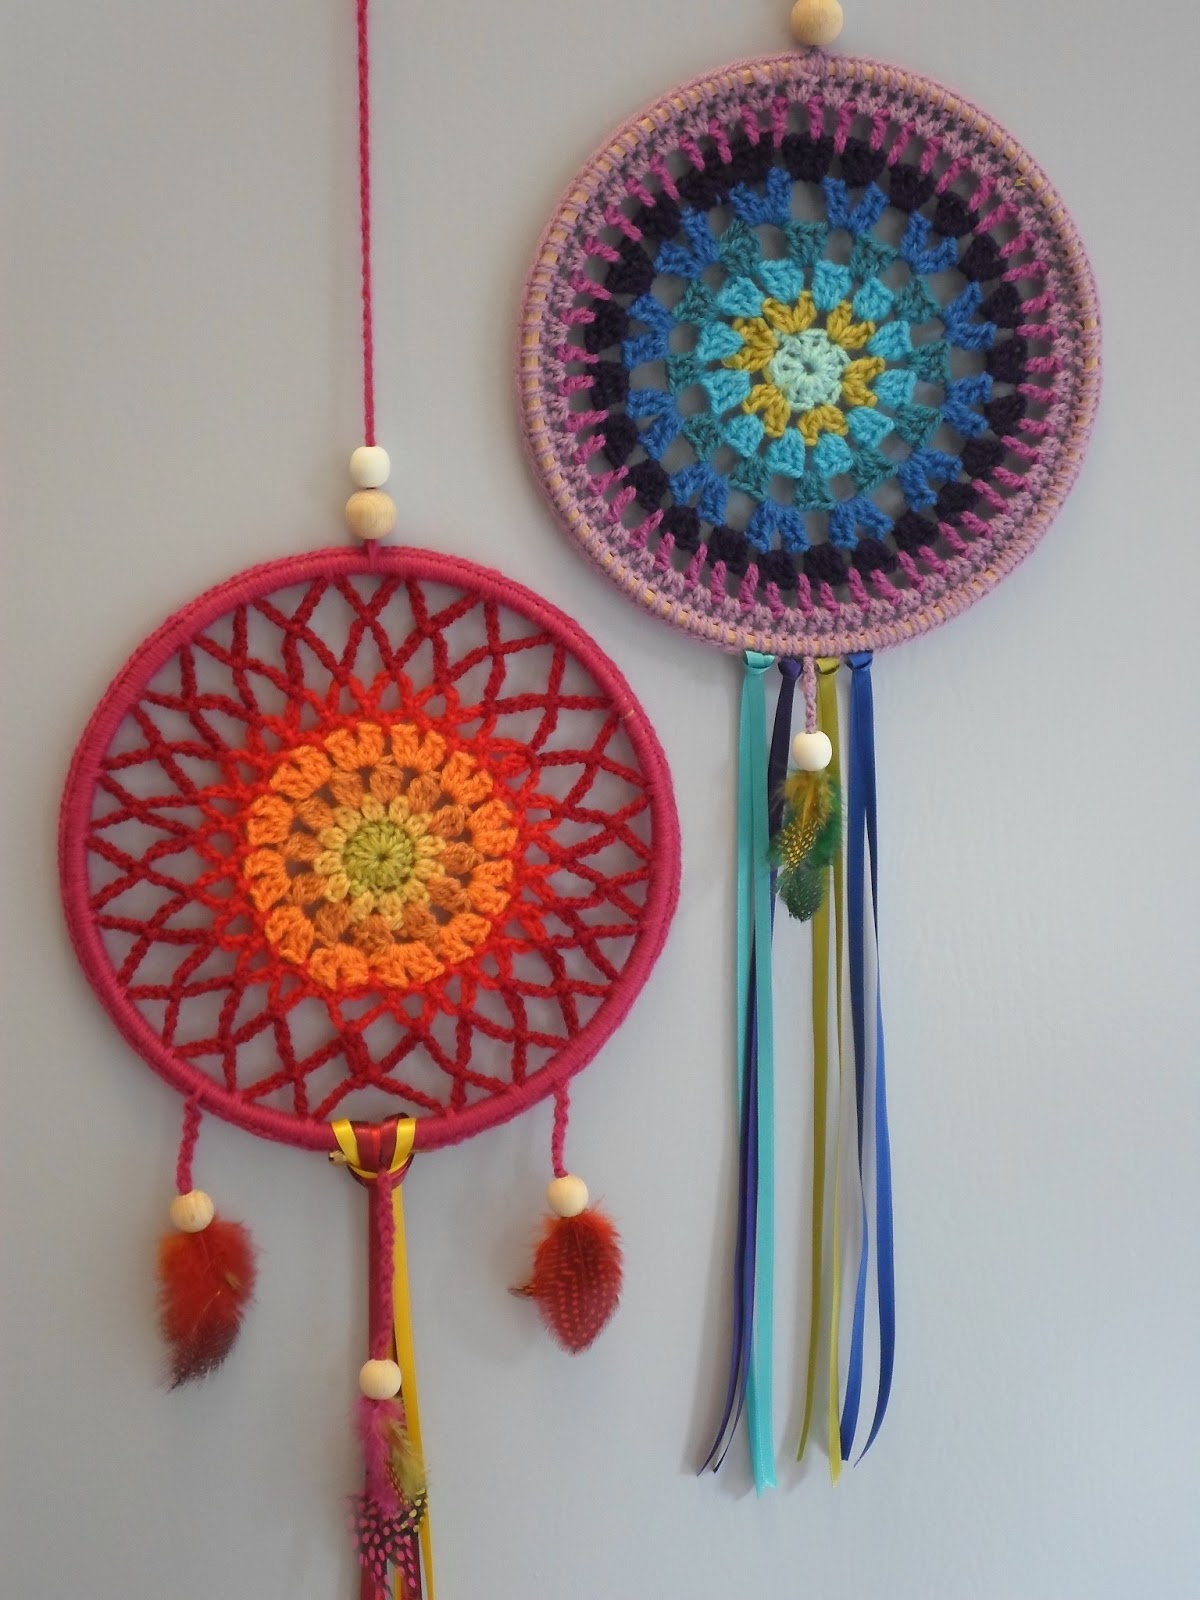 11 Ways To Display Your Crochet Mandalas Ahookamigurumi